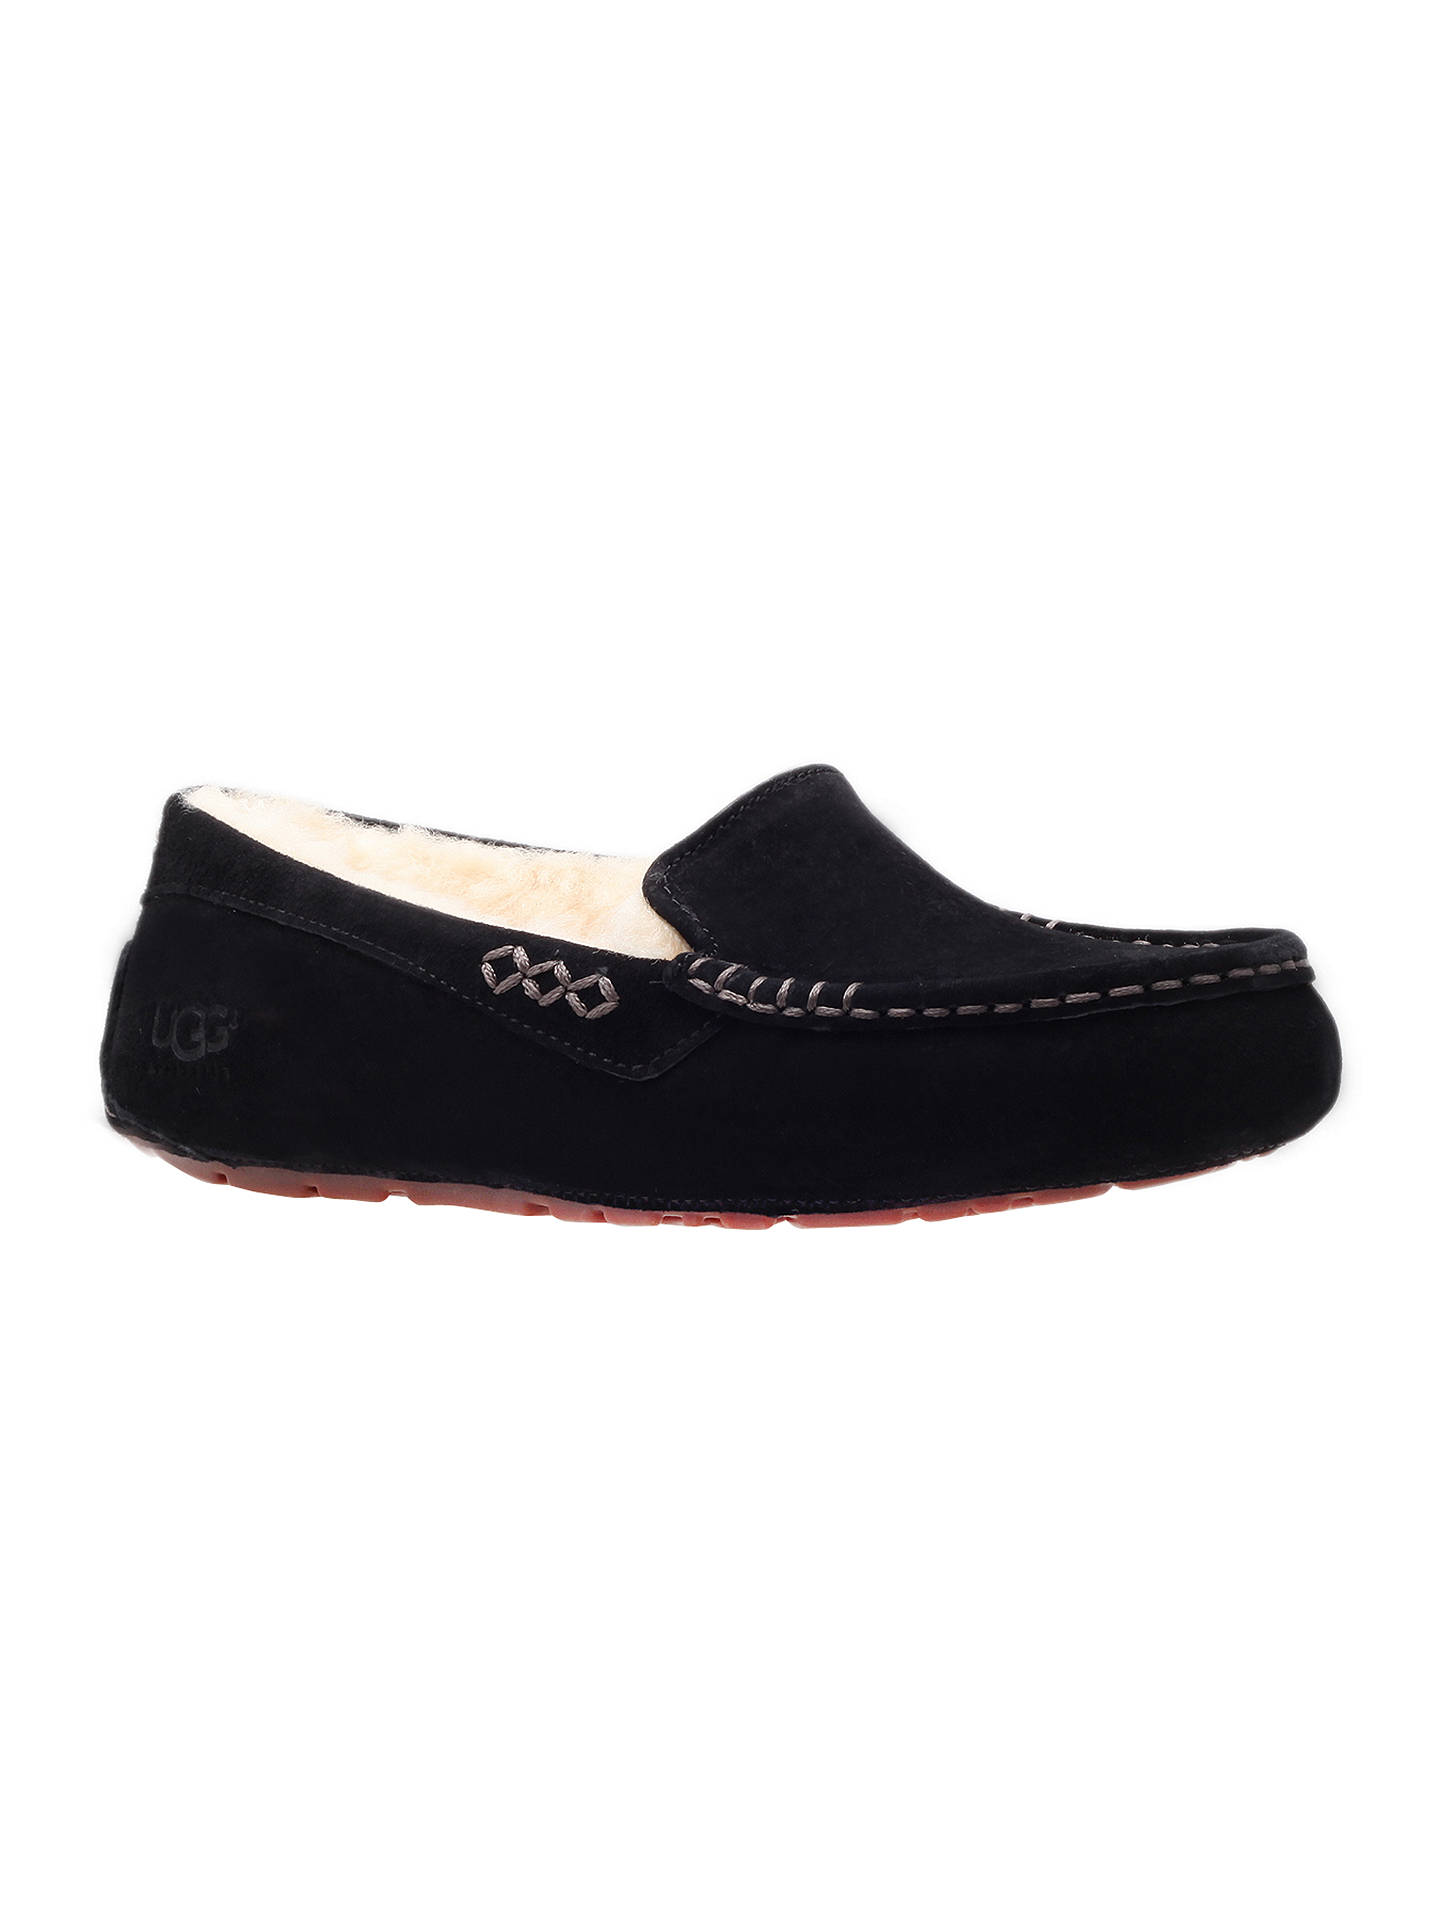 f35ec2abdf9 UGG Ansley Suede Slippers, Black at John Lewis & Partners